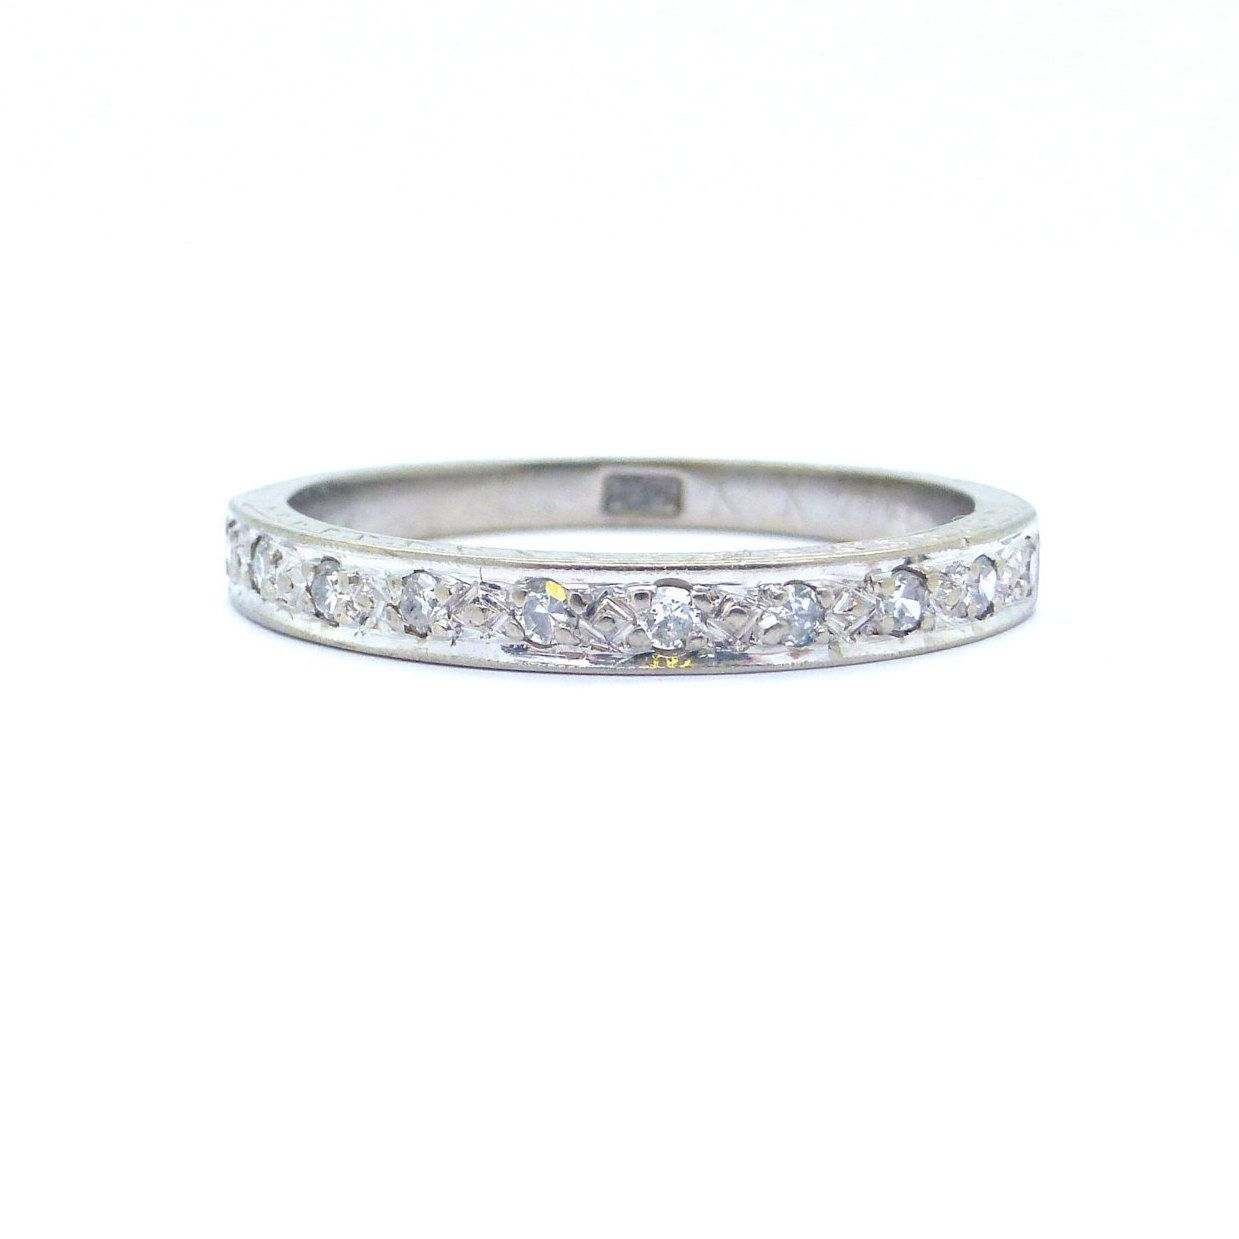 Art Deco Diamond Wedding Band Eternity Ring 1920s 18ct White Gold